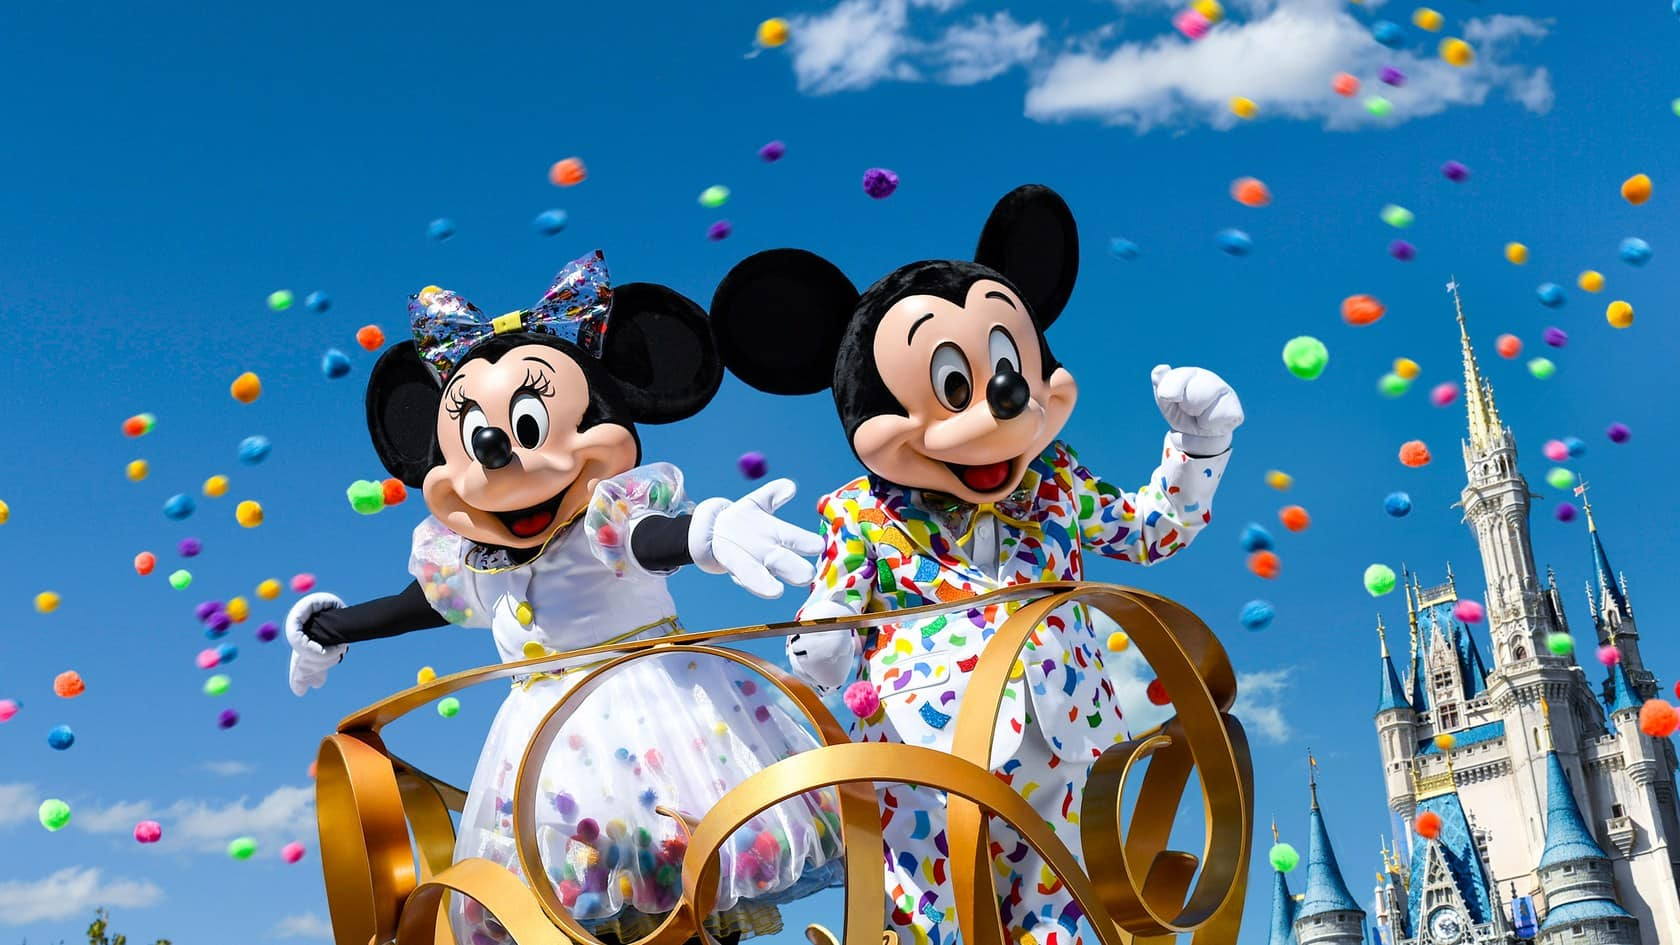 Mickey and Minnie Mouse standing atop a parade float at Magic Kingdom park